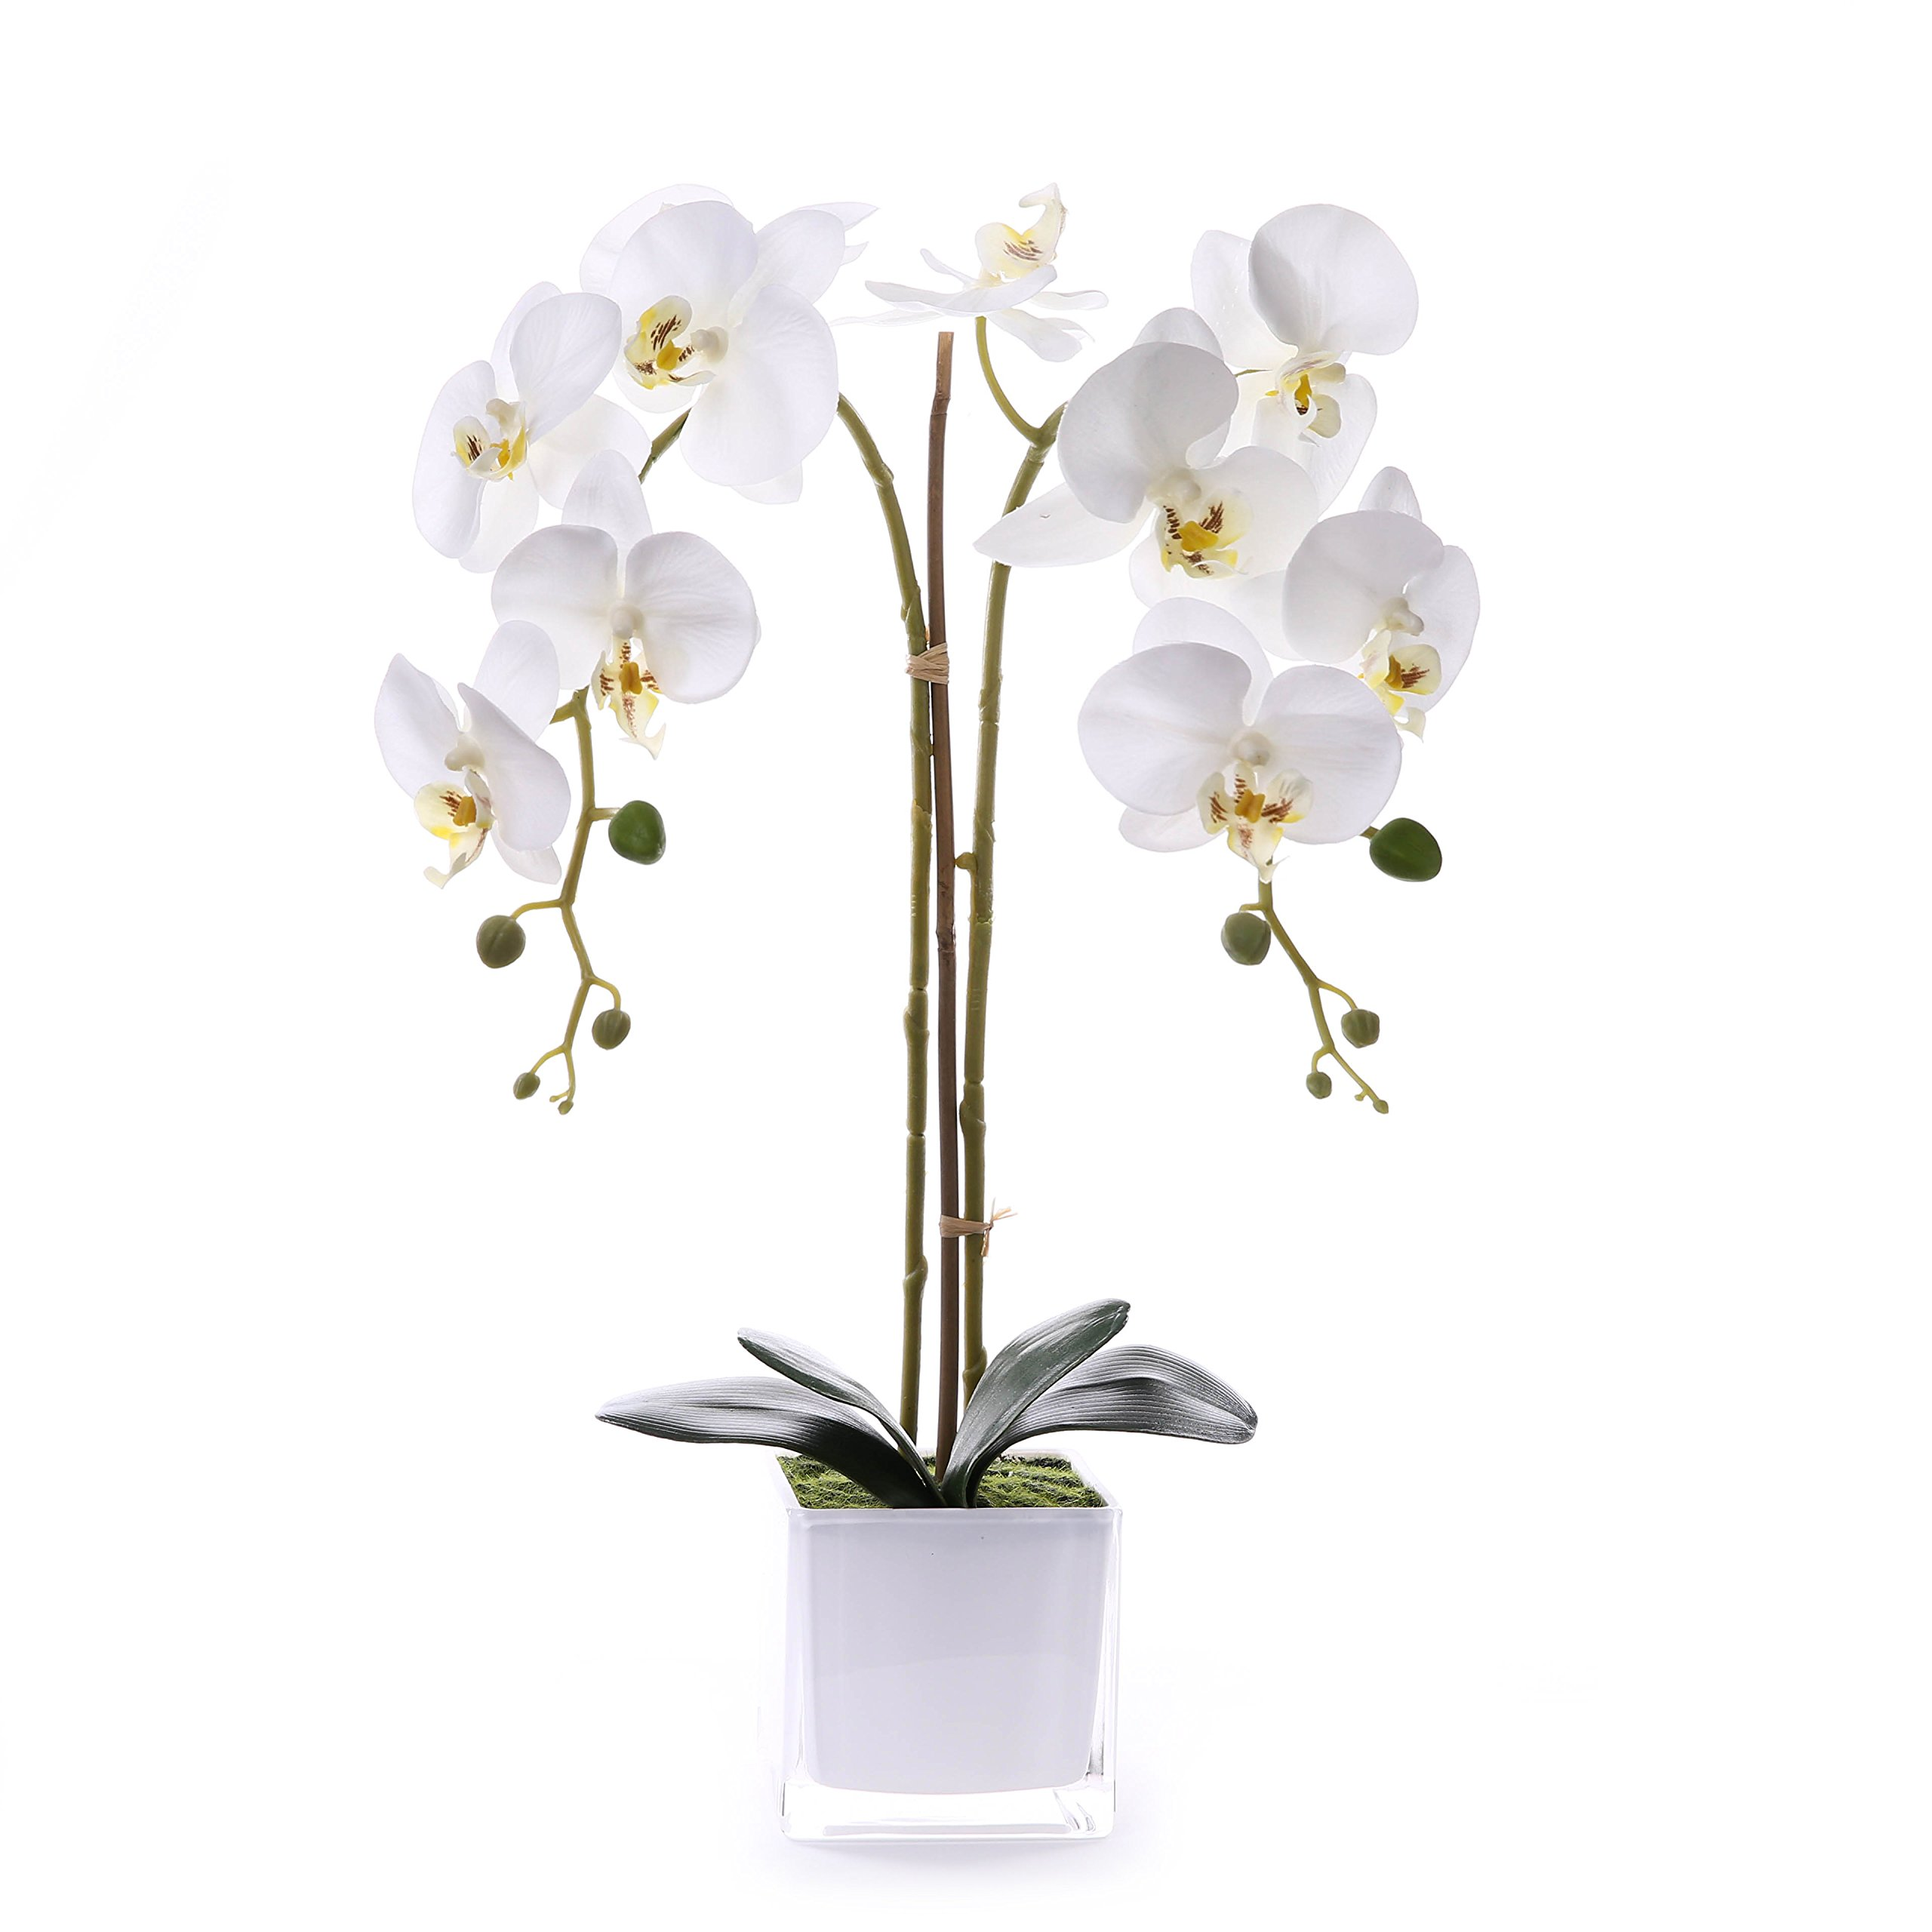 Livilan Silk Butterfly Orchid in Mirrored Vase Tall Artificial Flower Arrangements for Home Room Office Wedding Party Centerpiece Decor, White by Livilan